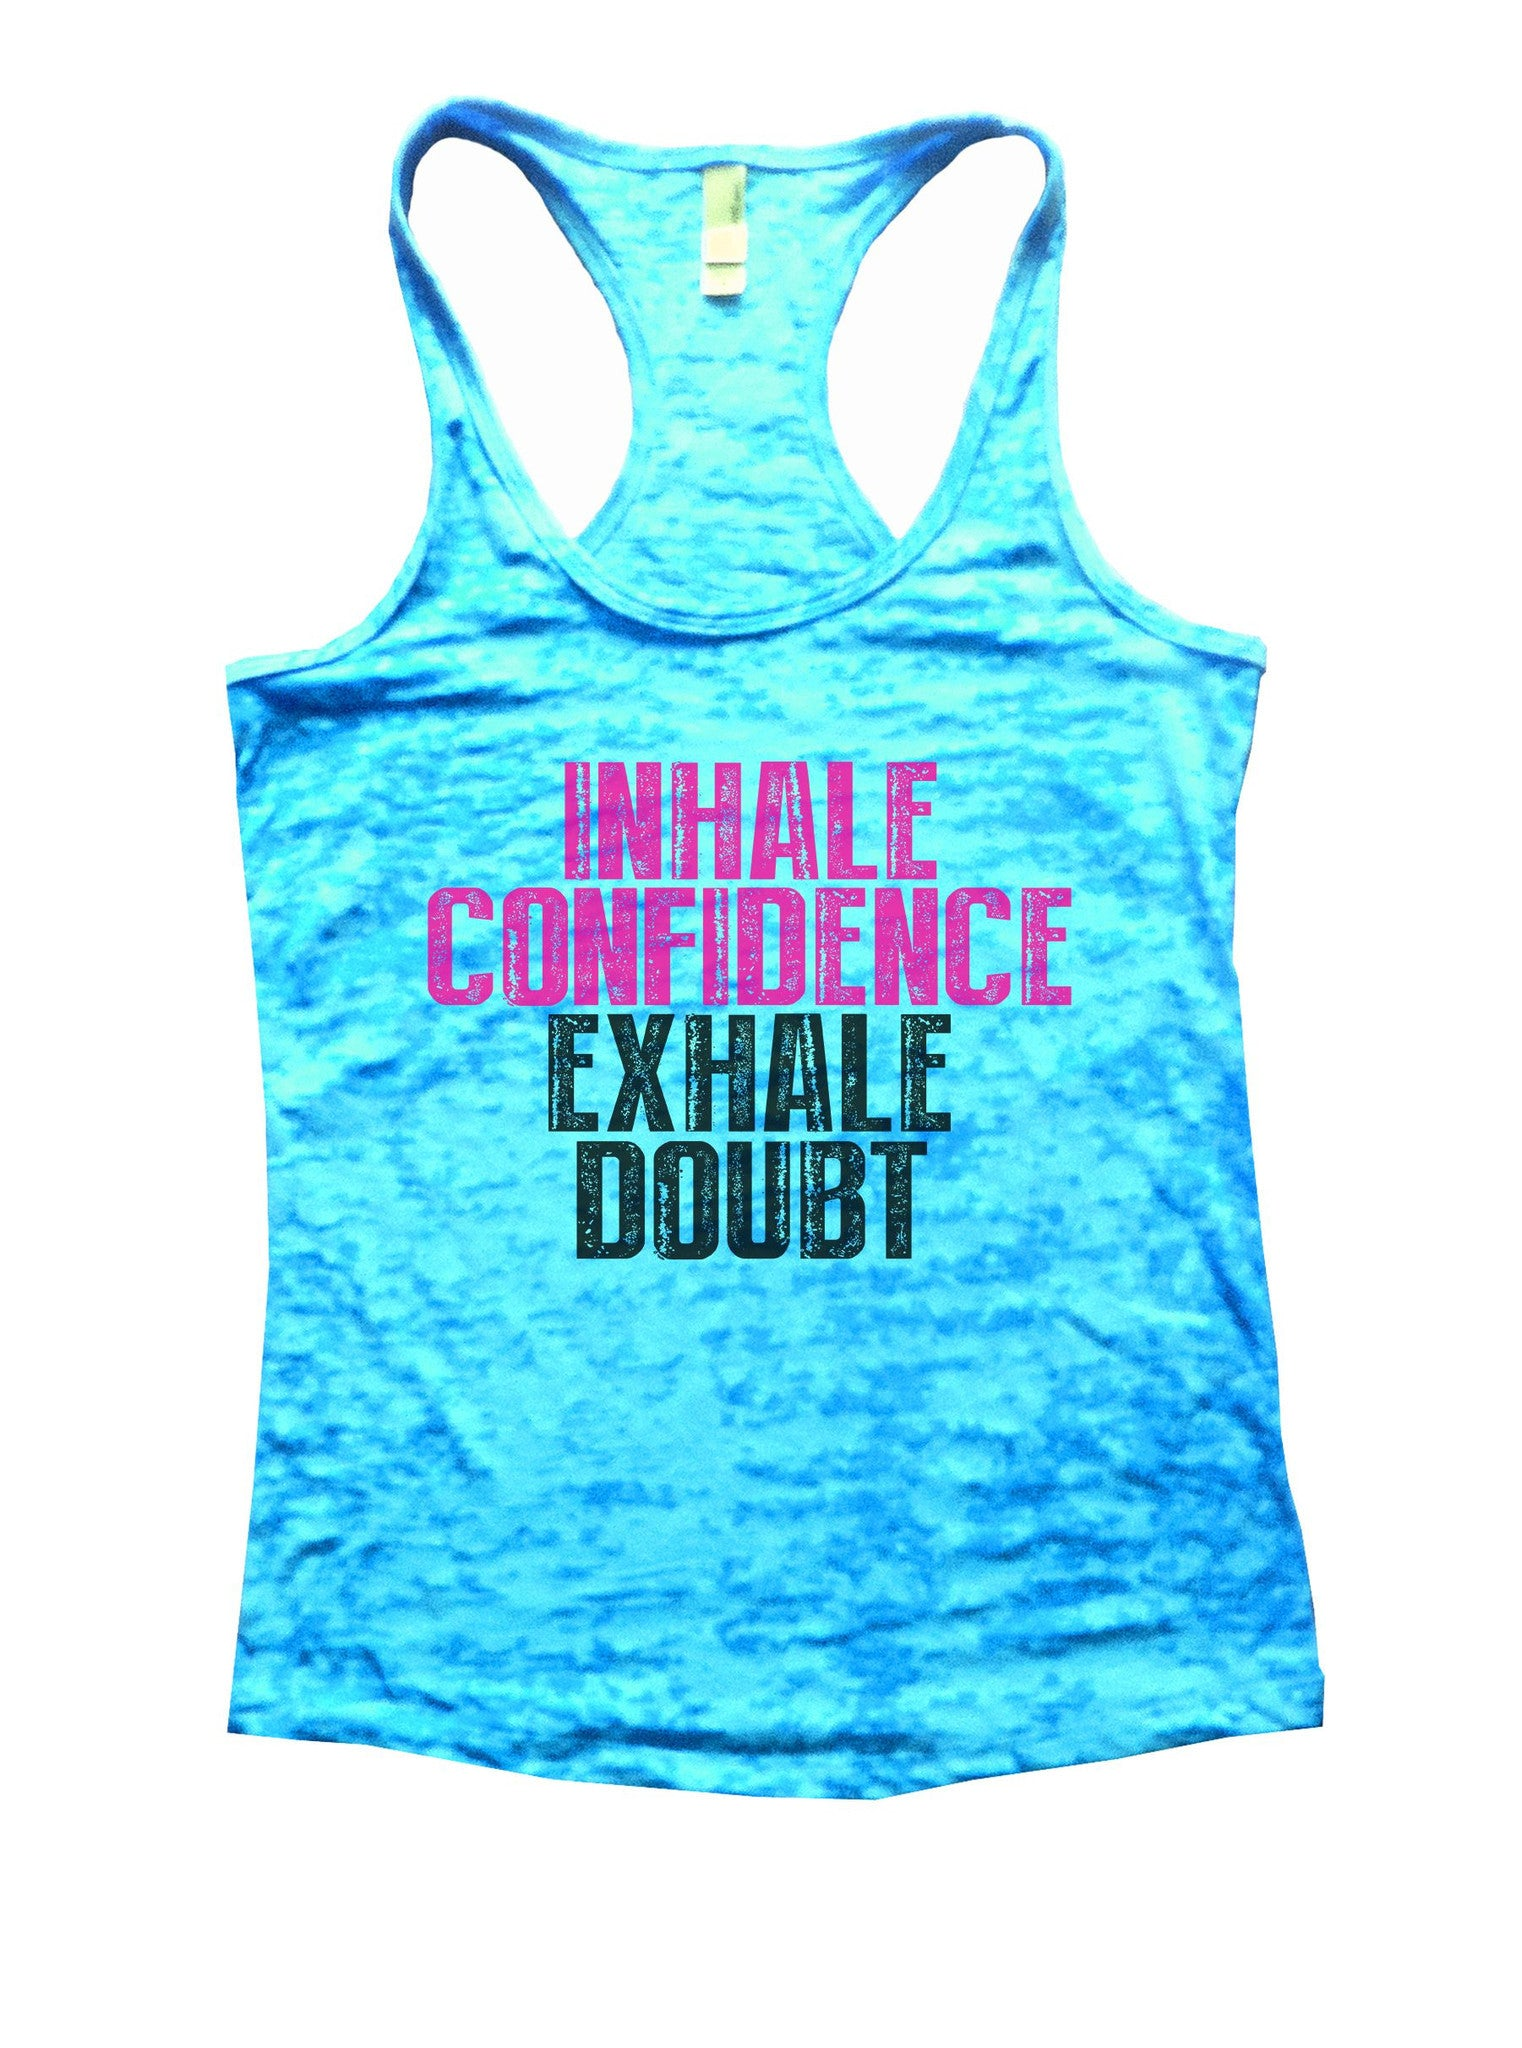 Inhale Confidence Exhale Doubt Burnout Tank Top By BurnoutTankTops.com - 1021 - Funny Shirts Tank Tops Burnouts and Triblends  - 4